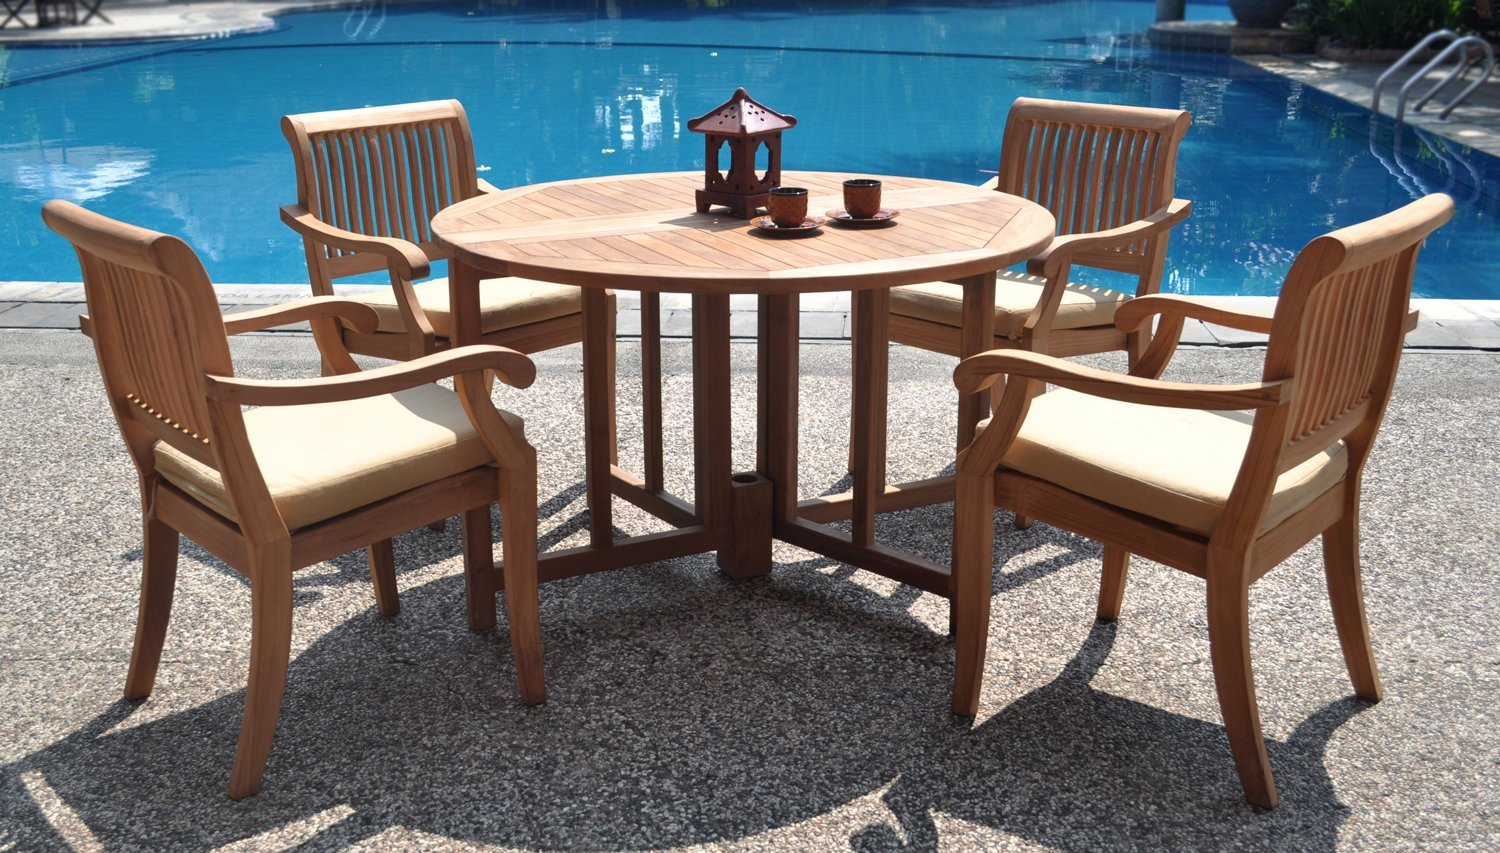 Cheap Patio Furniture for Under $200! - Wooden Furniture Hub